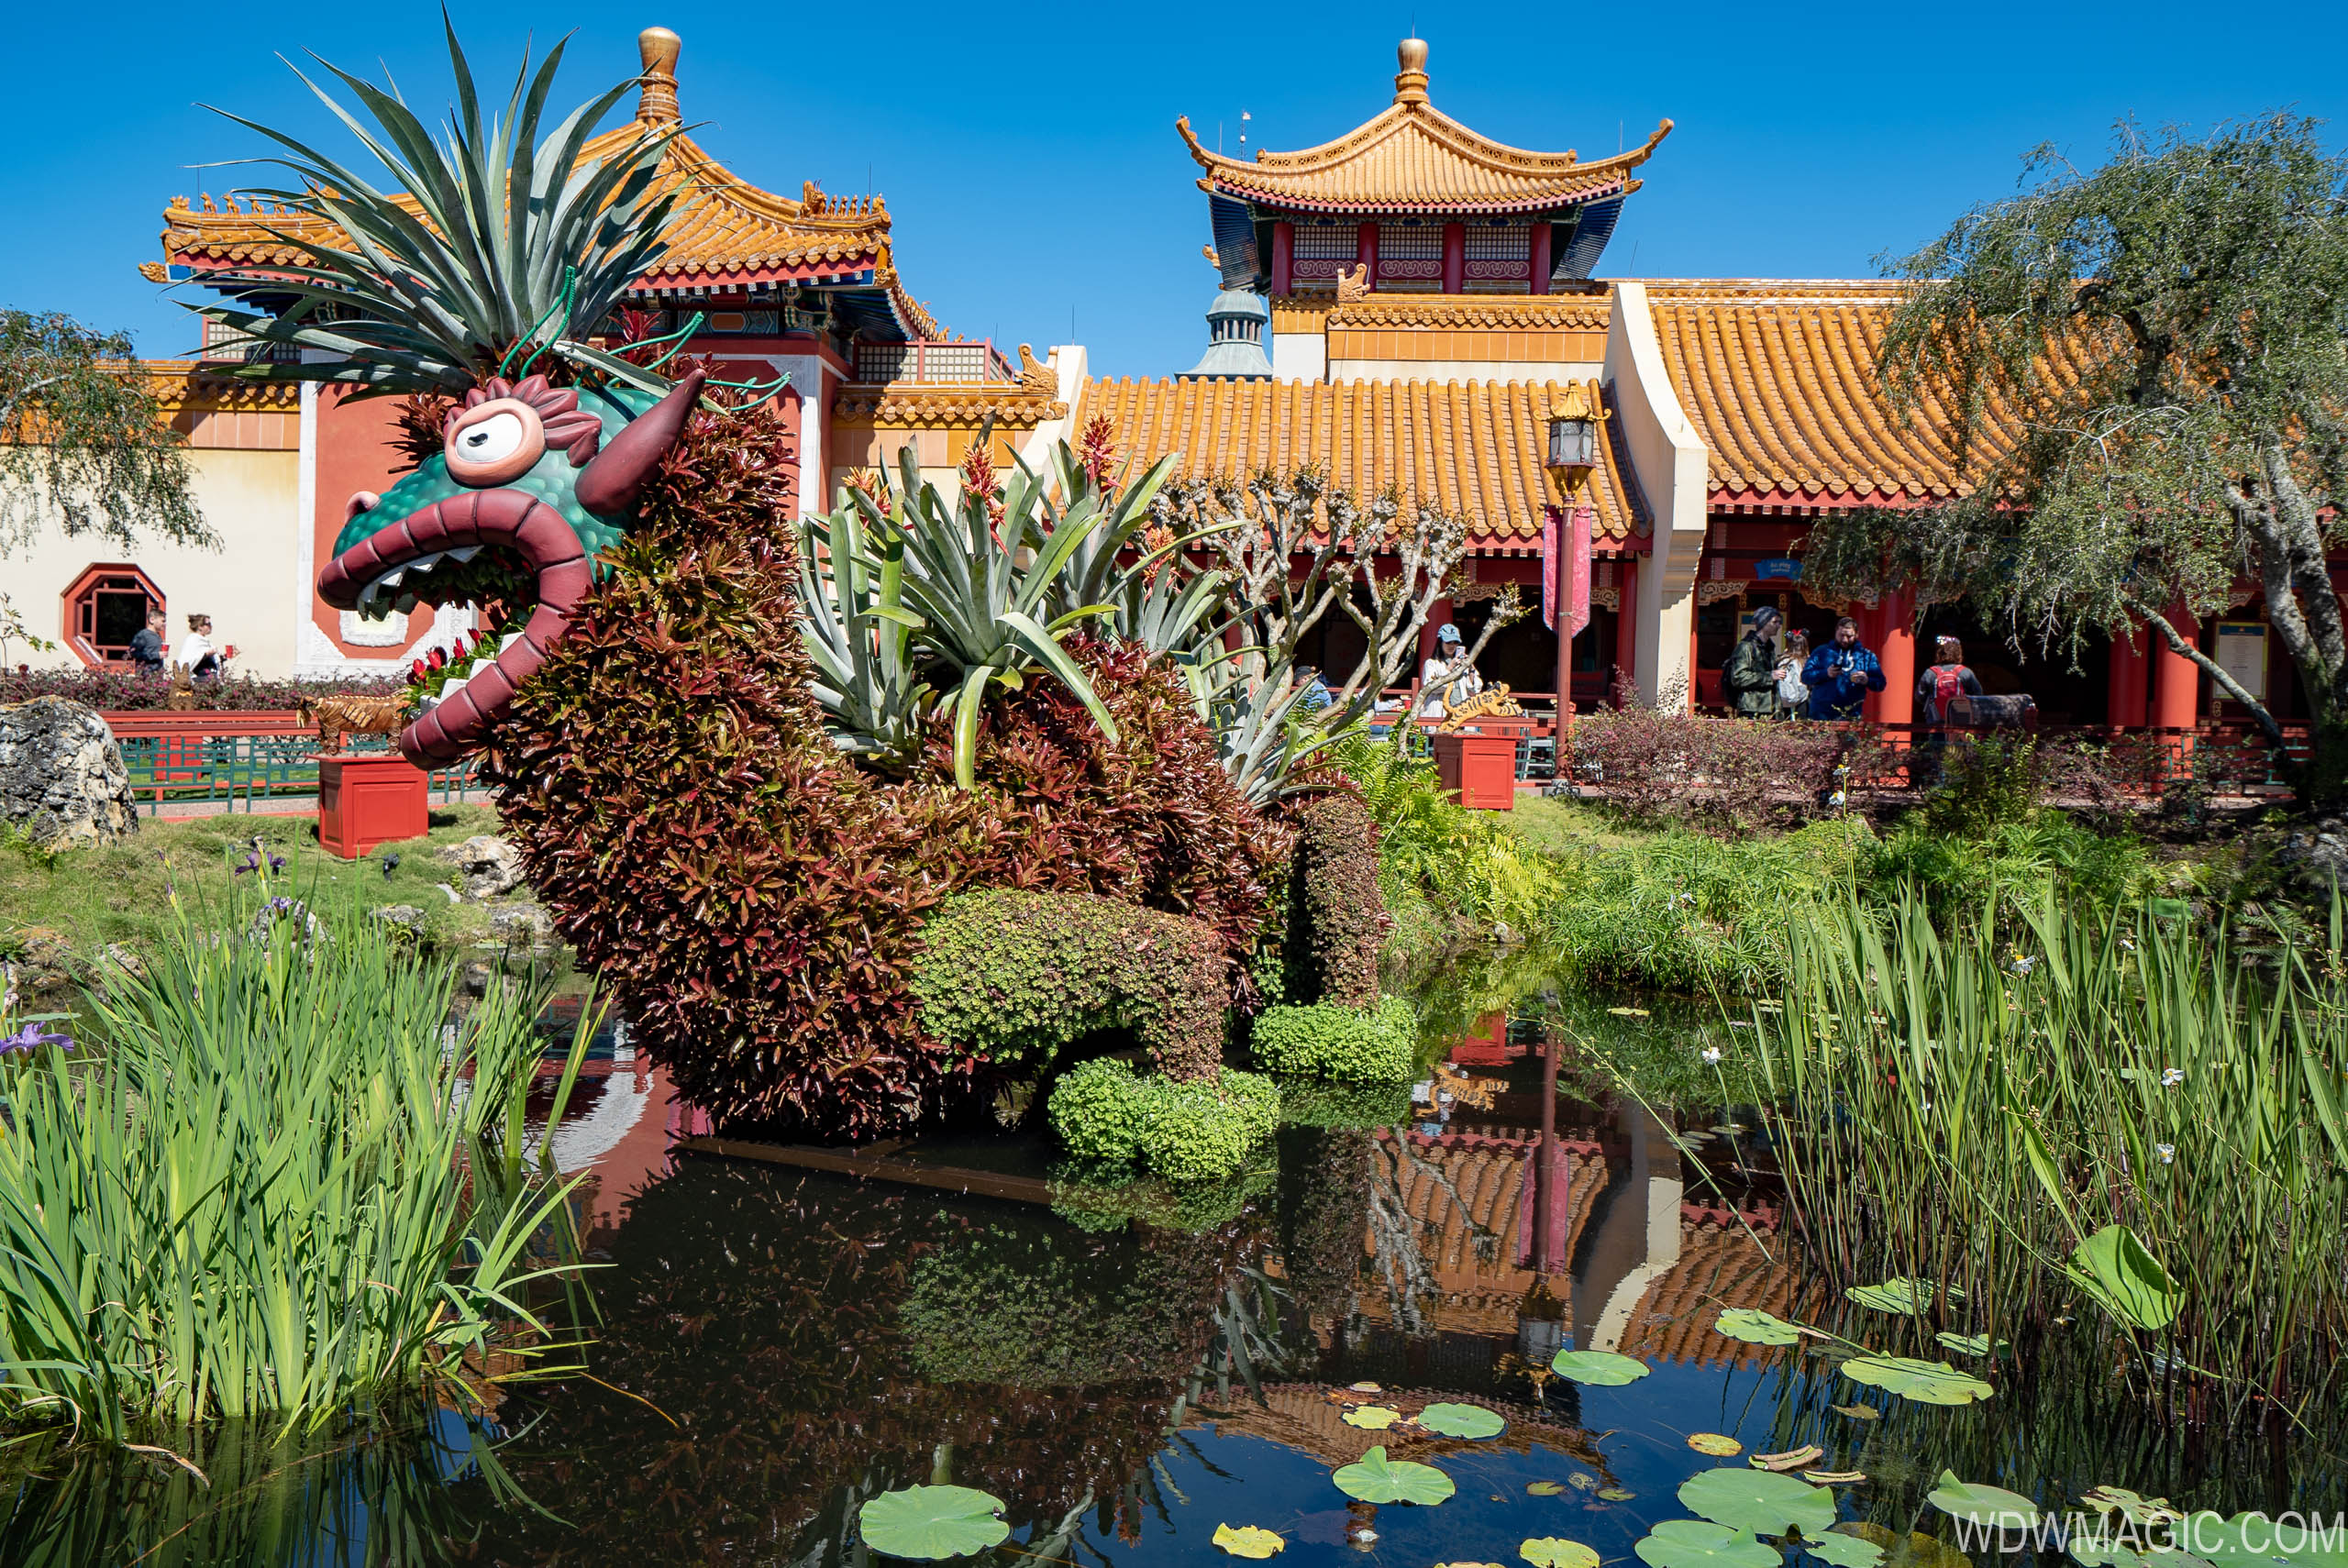 China Pavilion at Epcot